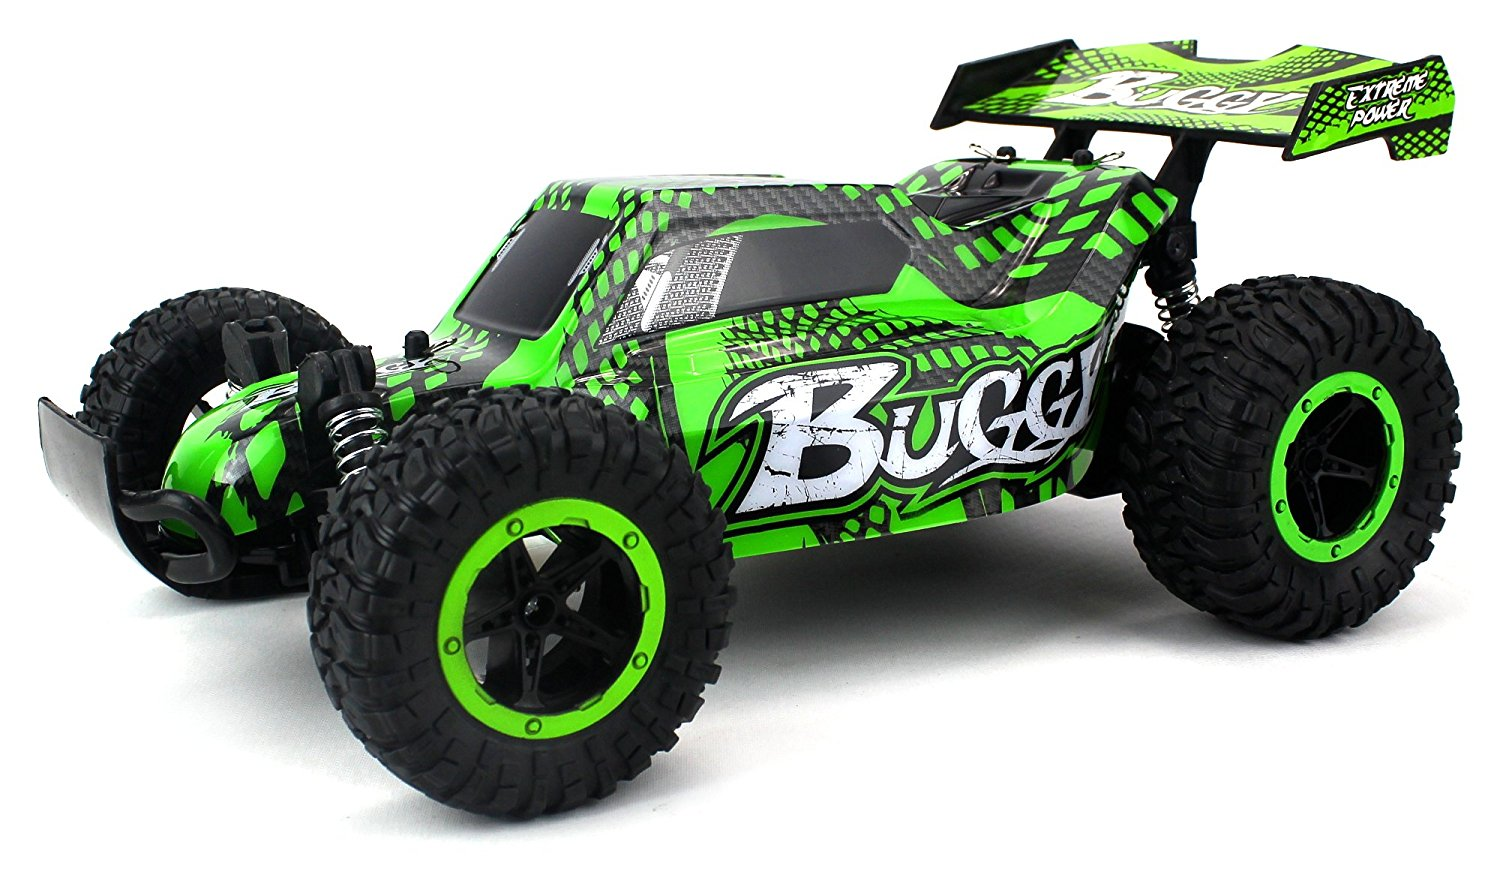 Cheetah King Remote Control RC Buggy Car 2 4 GHz PRO System 1:16 Scale Size  RTR w/ Working Suspension, Spring Shock Absorbers (Colors May Vary)